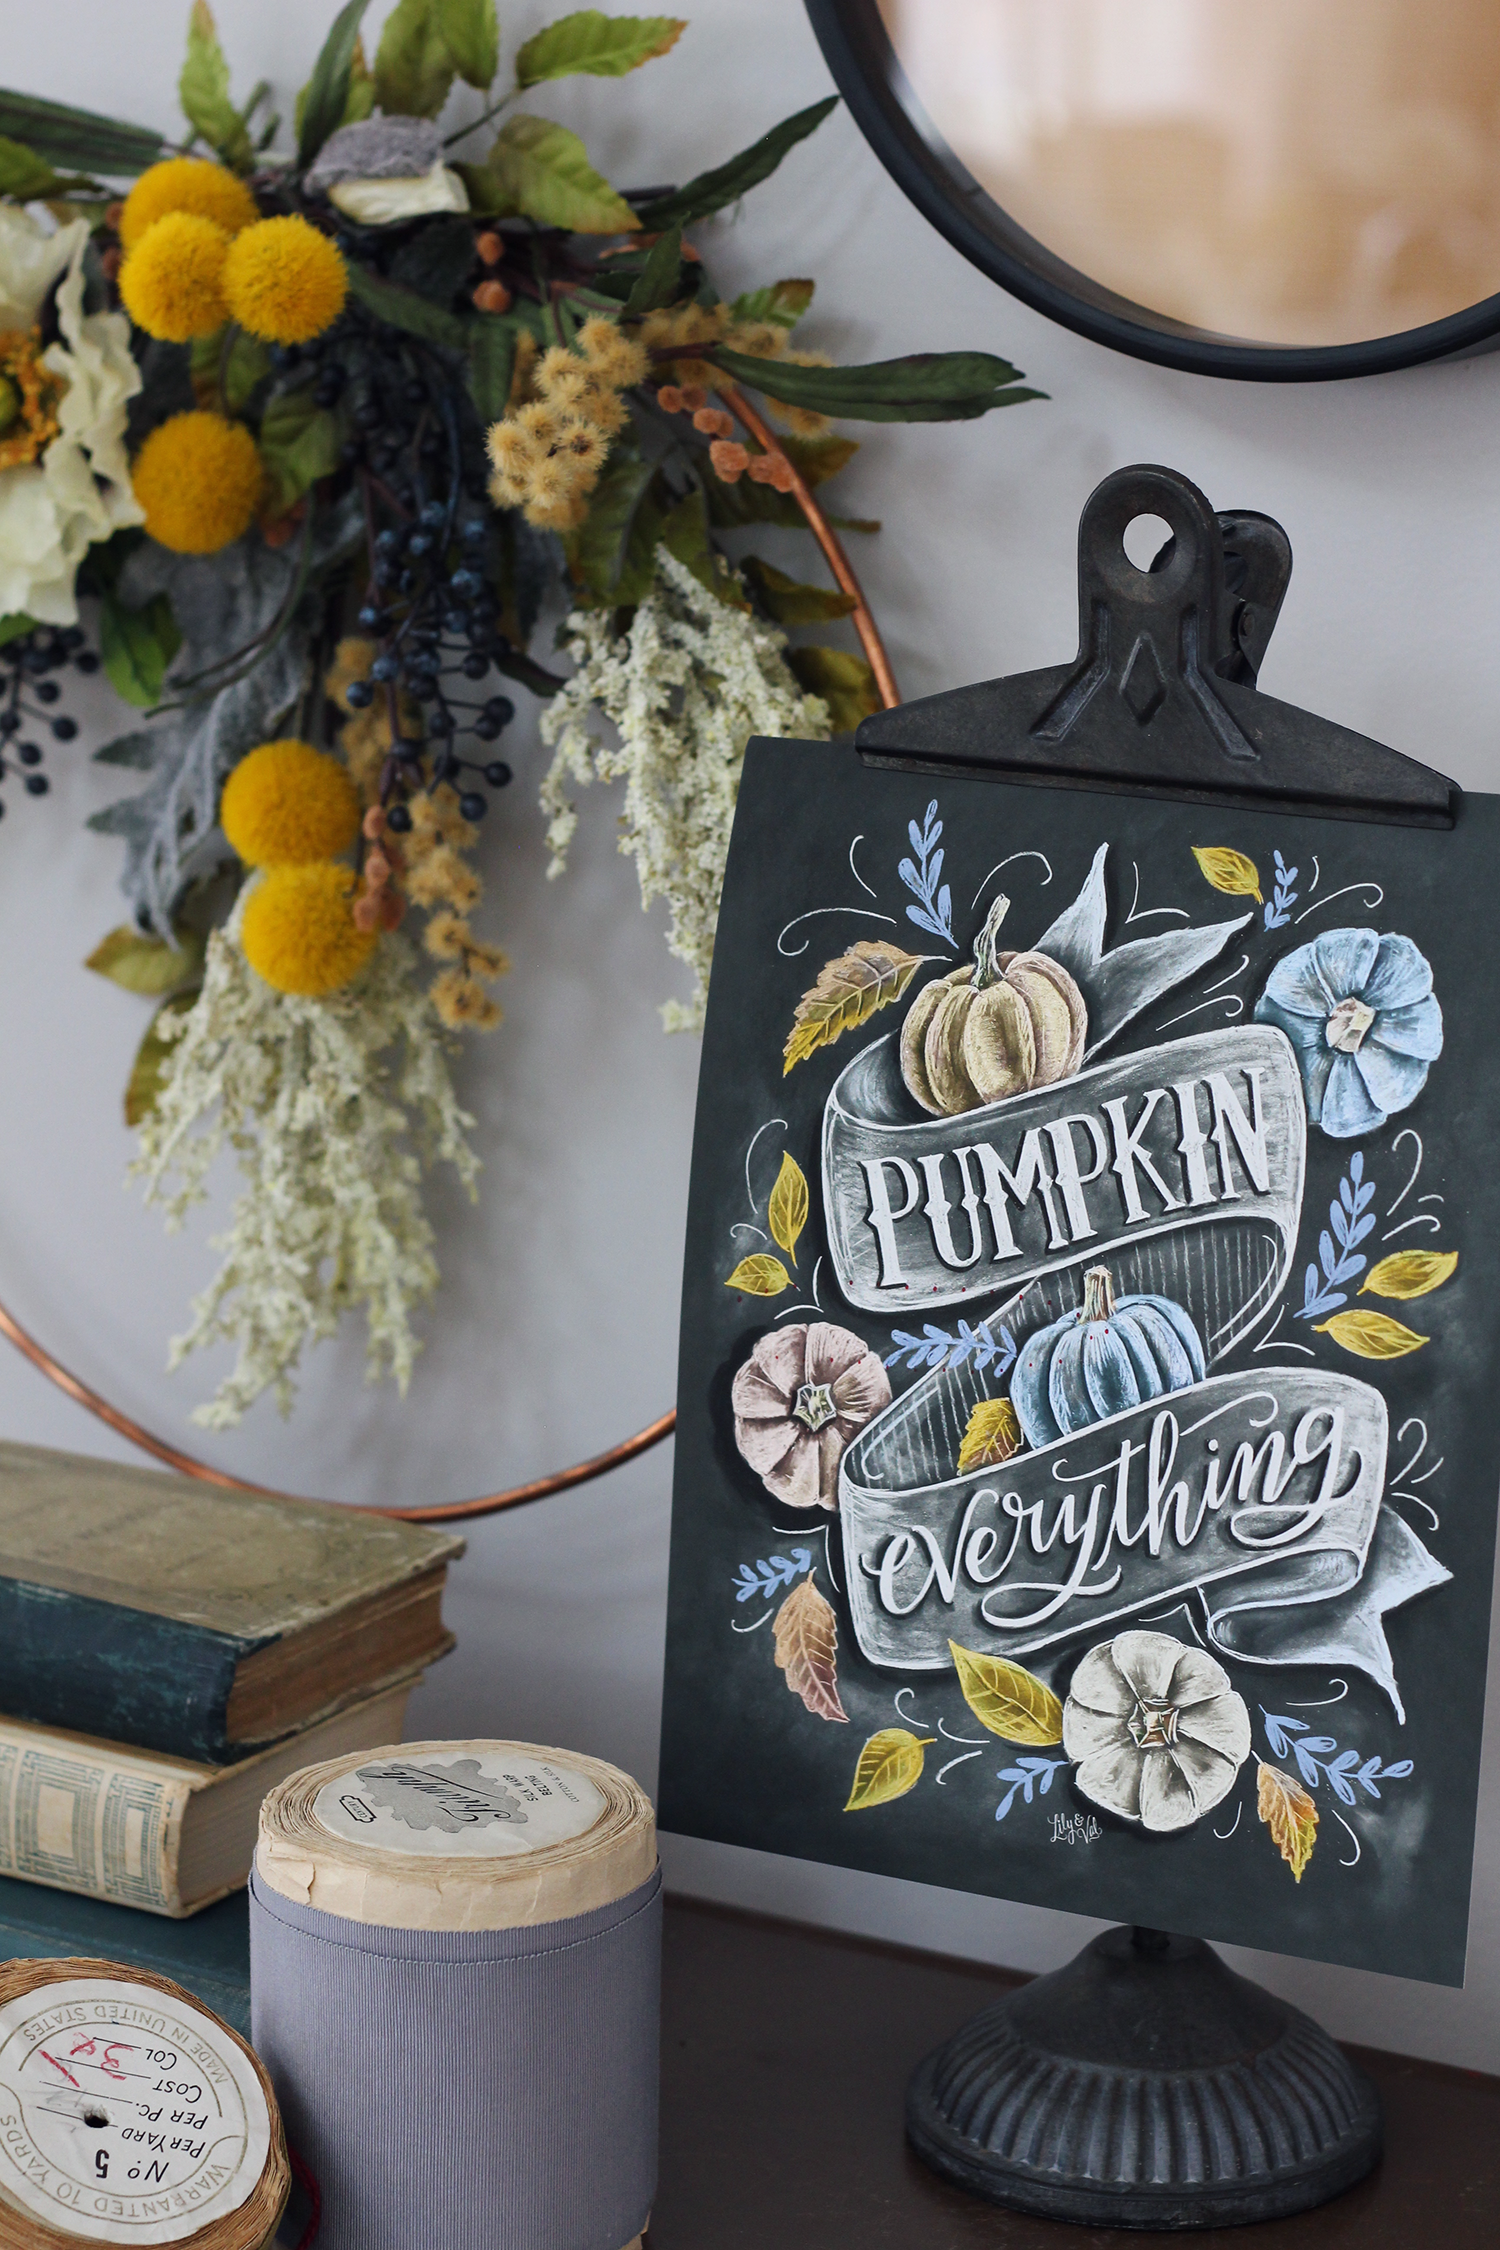 Pumpkin Everything chalk art design for your fall decorating | Pumpkin Decor